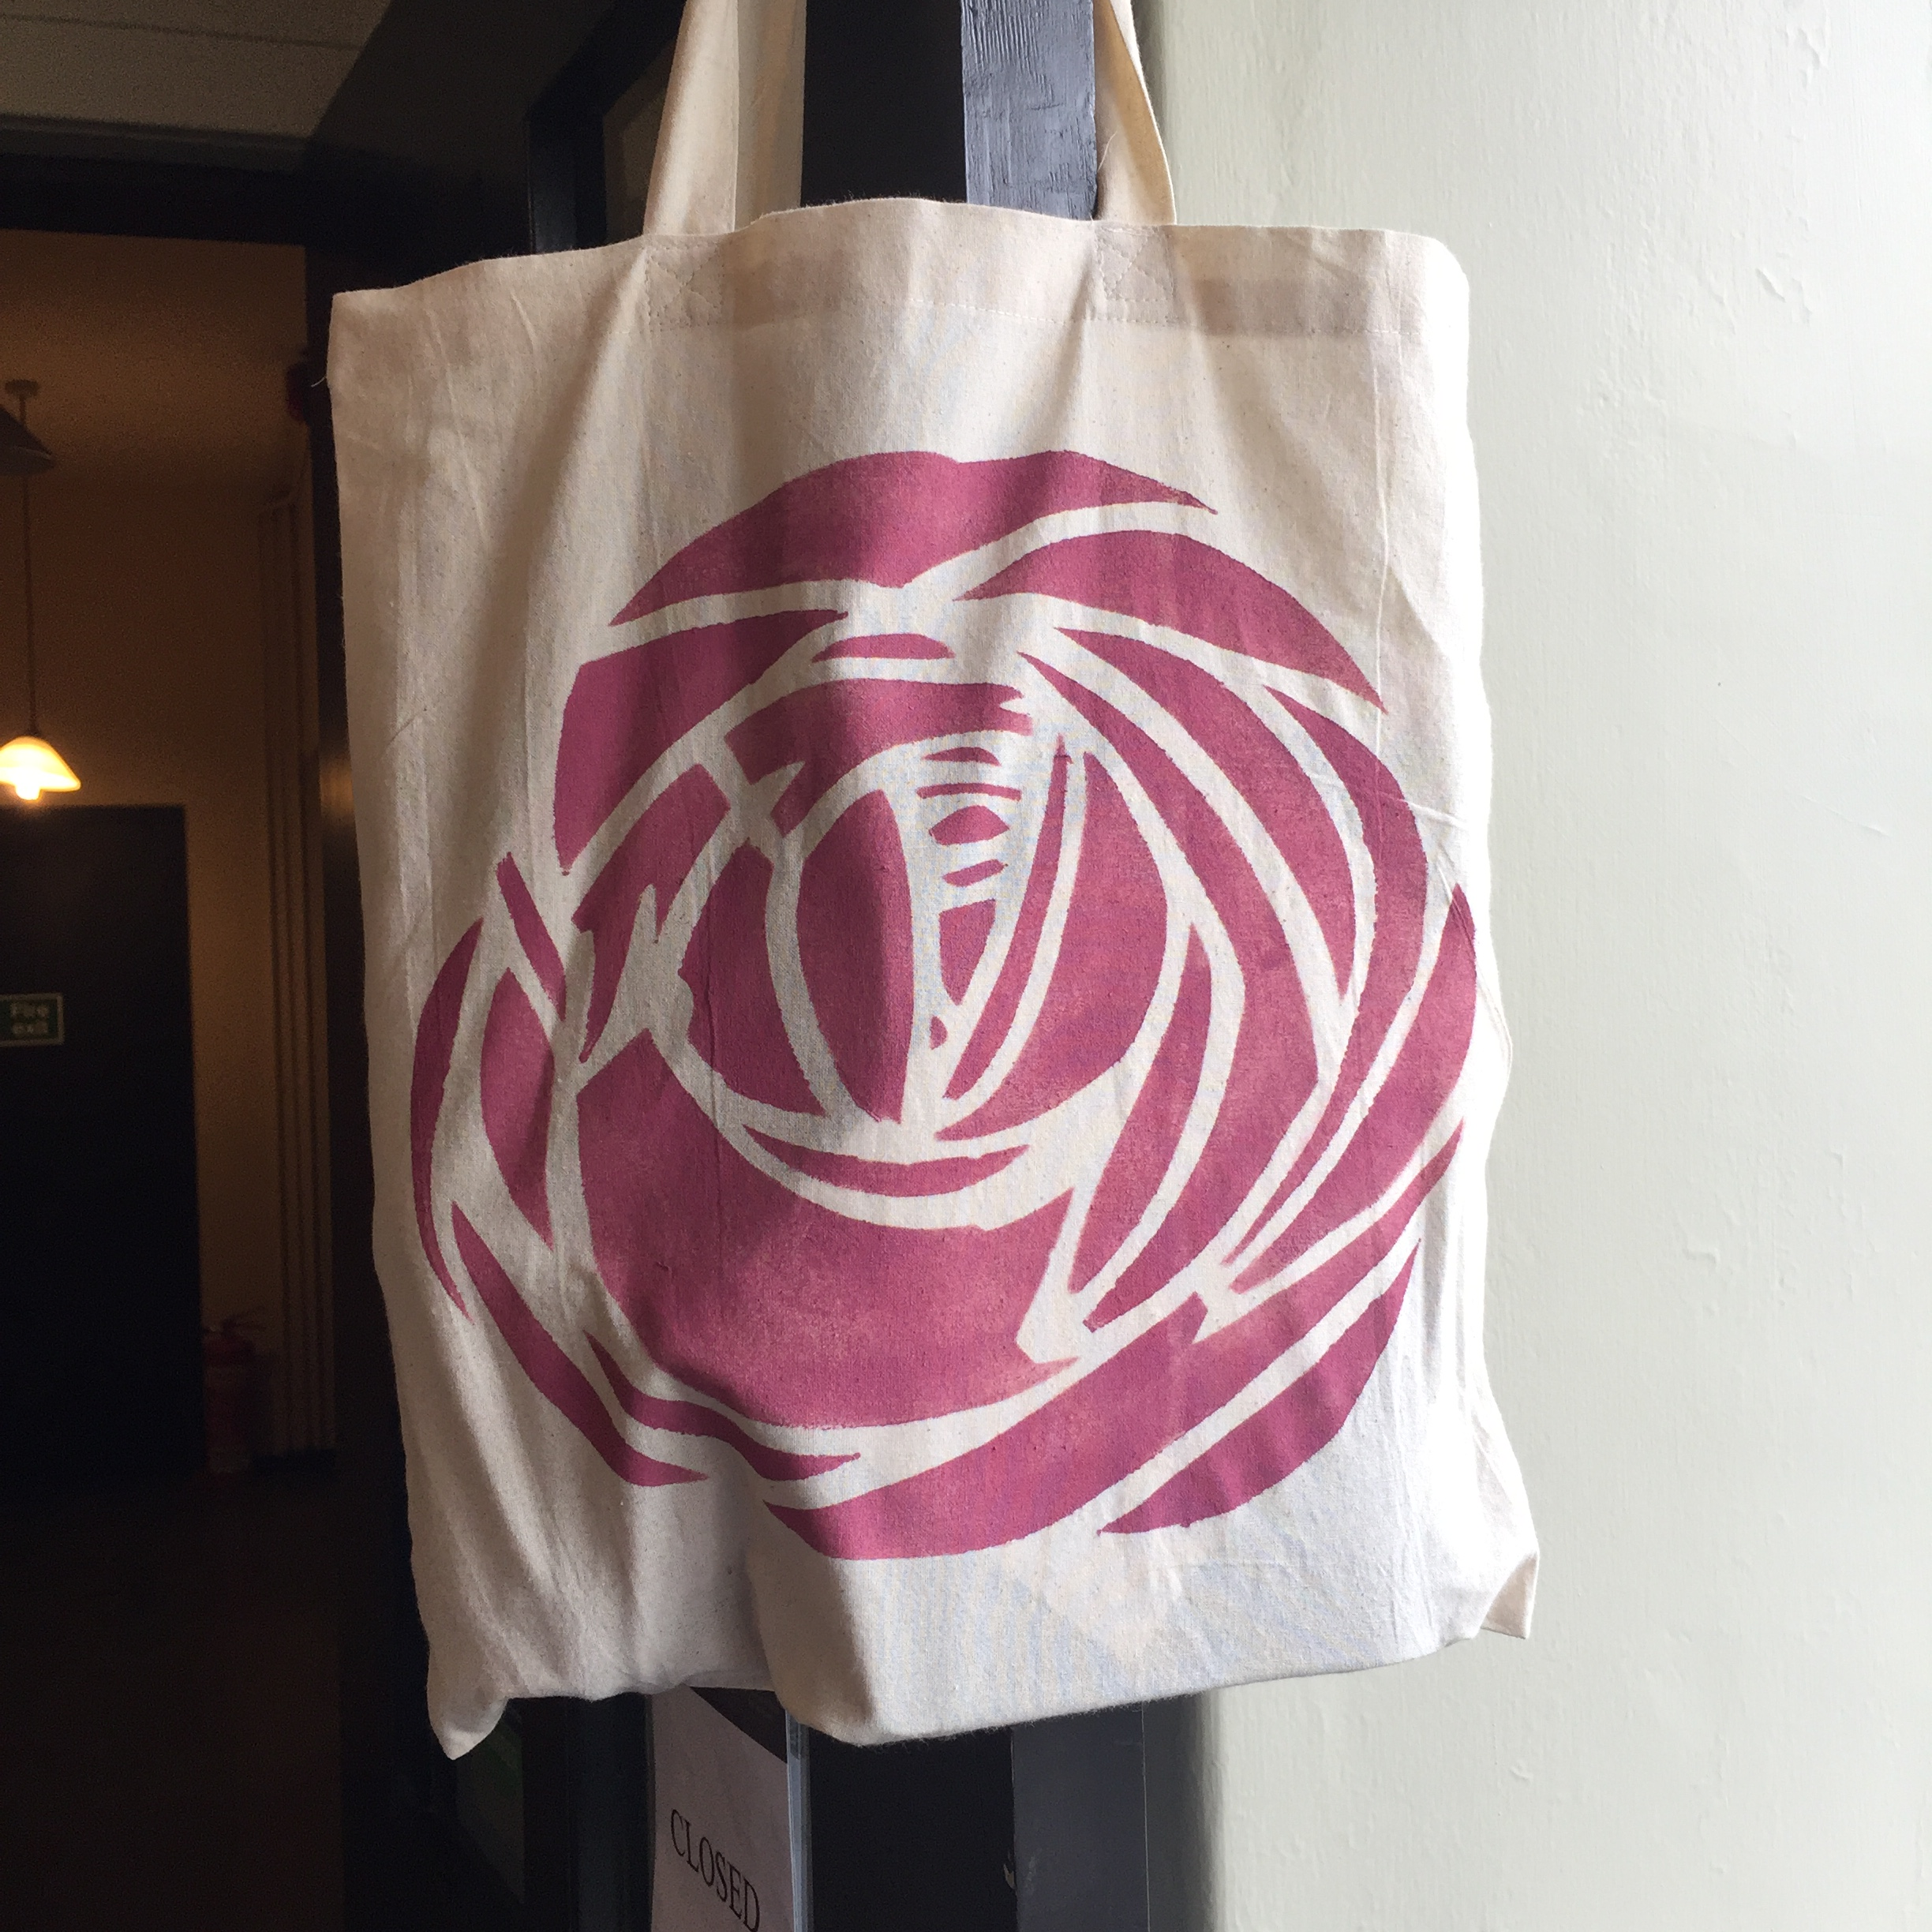 THE BIG ROSE BAG FOR LIFE u2013 A MACKINTOSH ROSE TO CARRY YOUR SHOPPING IN AN ECO FRIENDLY MANNER & THE BIG ROSE BAG FOR LIFE u2013 A MACKINTOSH ROSE TO CARRY YOUR SHOPPING ...